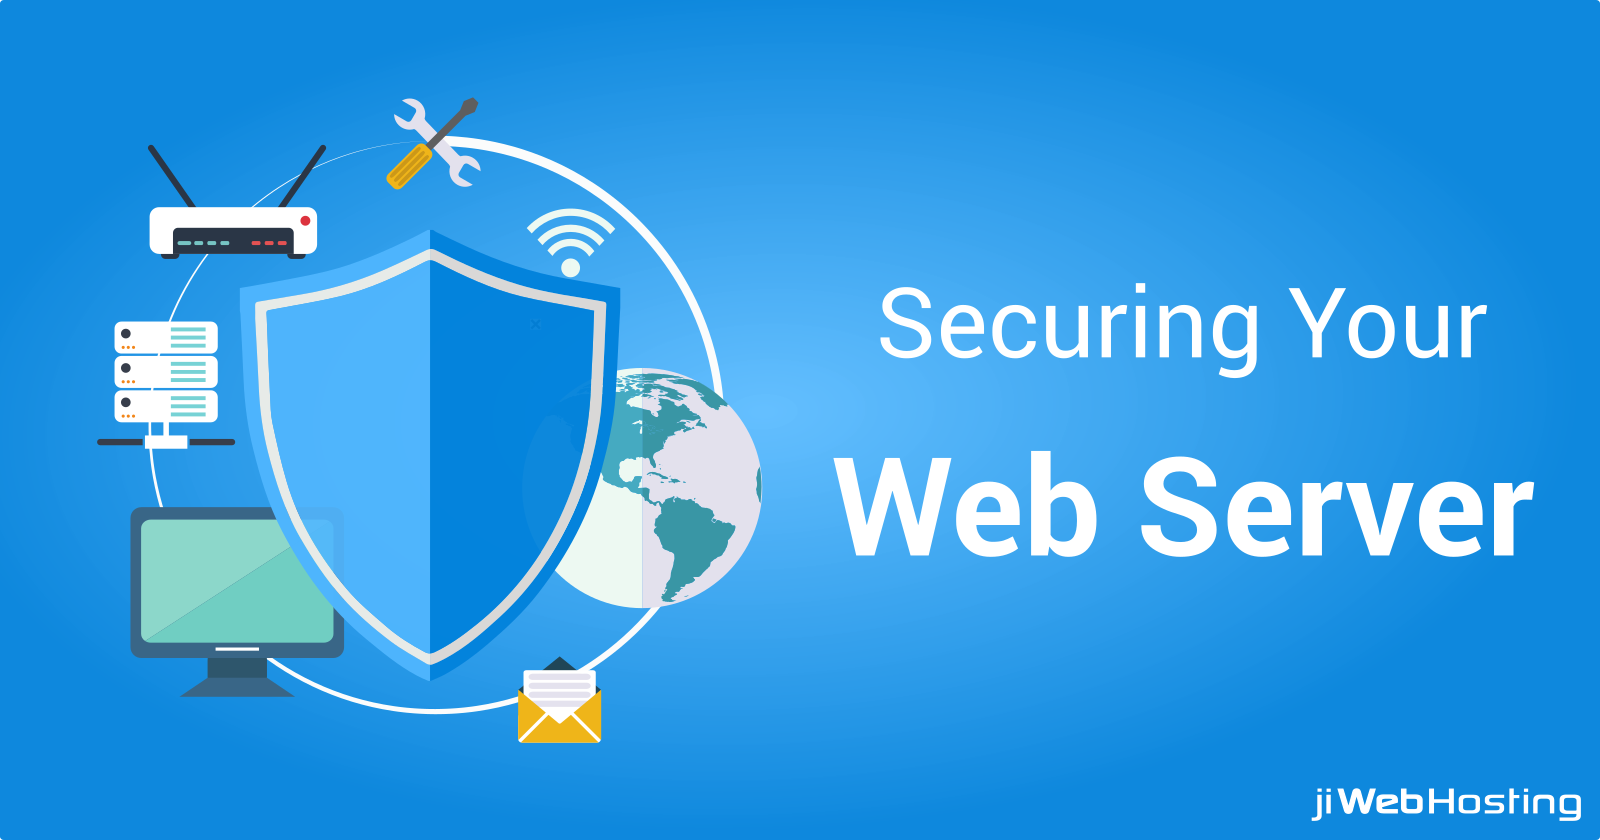 How to Secure your Web Server?